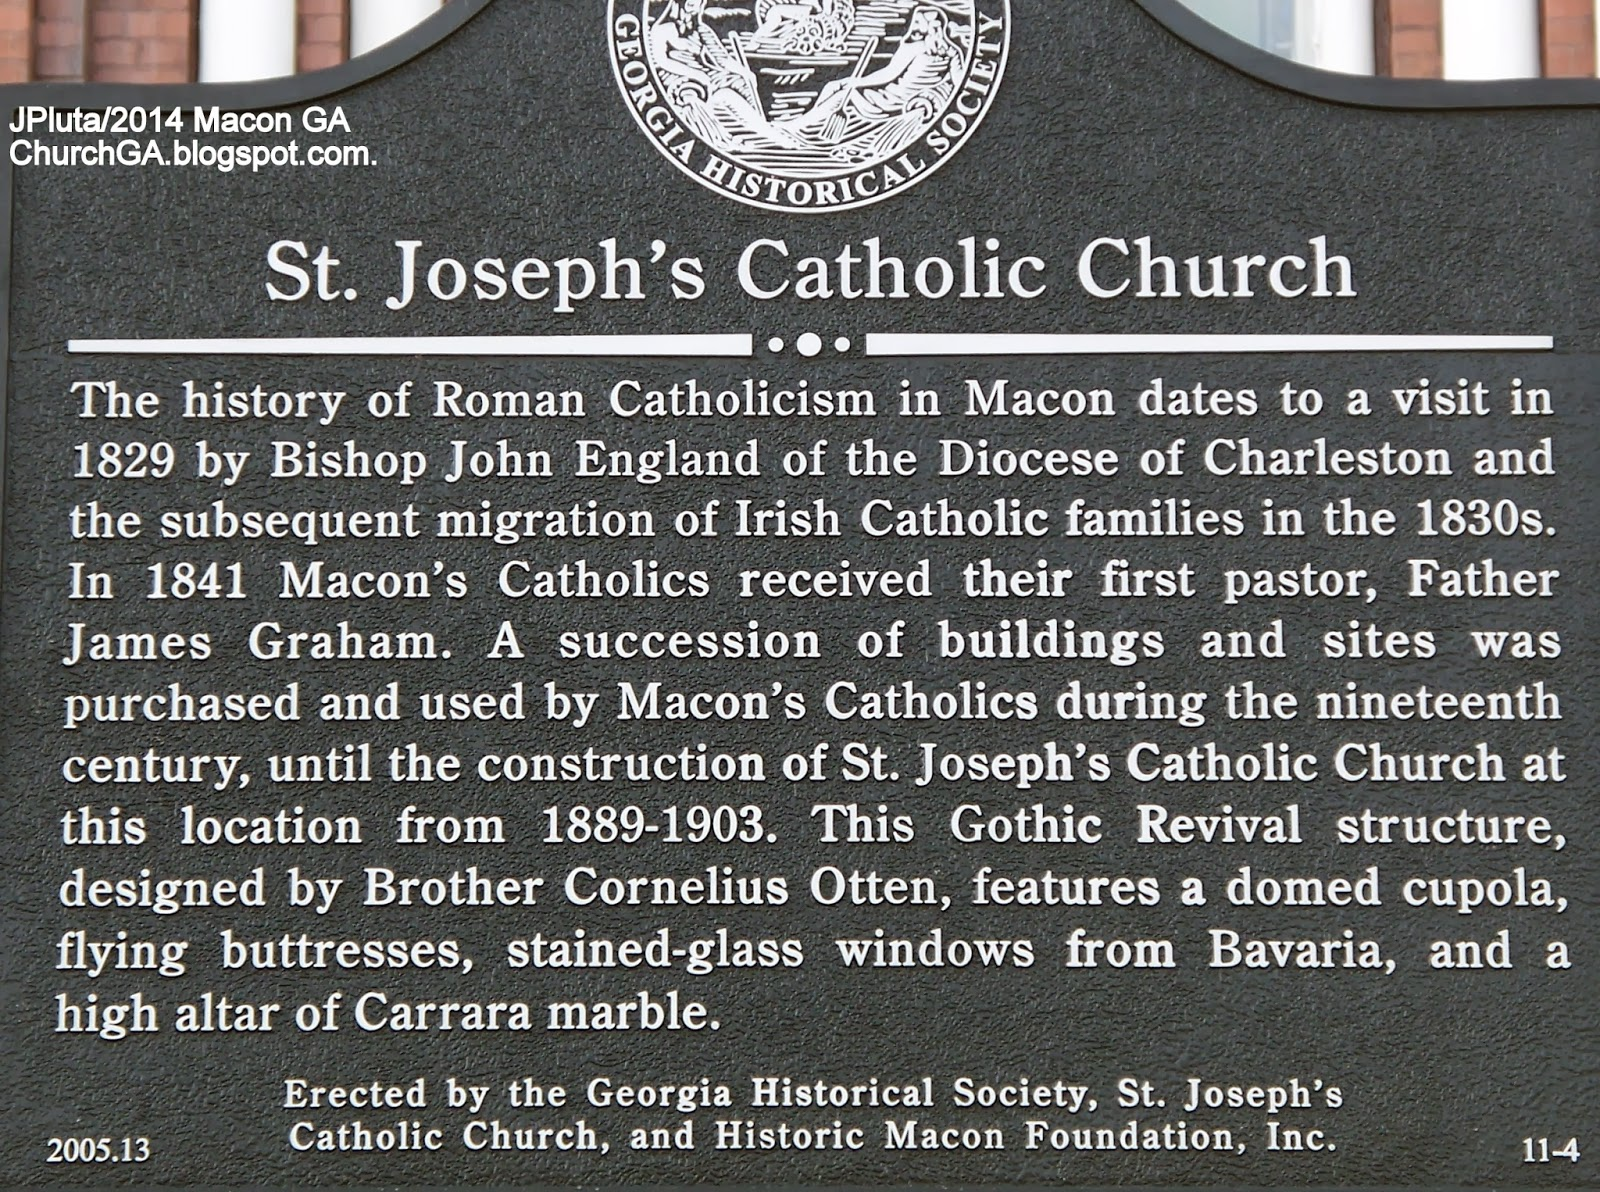 catholic singles in st joseph county In 1971, the st joseph elementary school was renovated and expanded and that same year the sisters of st joseph assumed the high school teaching and duties in 1972, the notre dame convent was remodeled and redecorated.